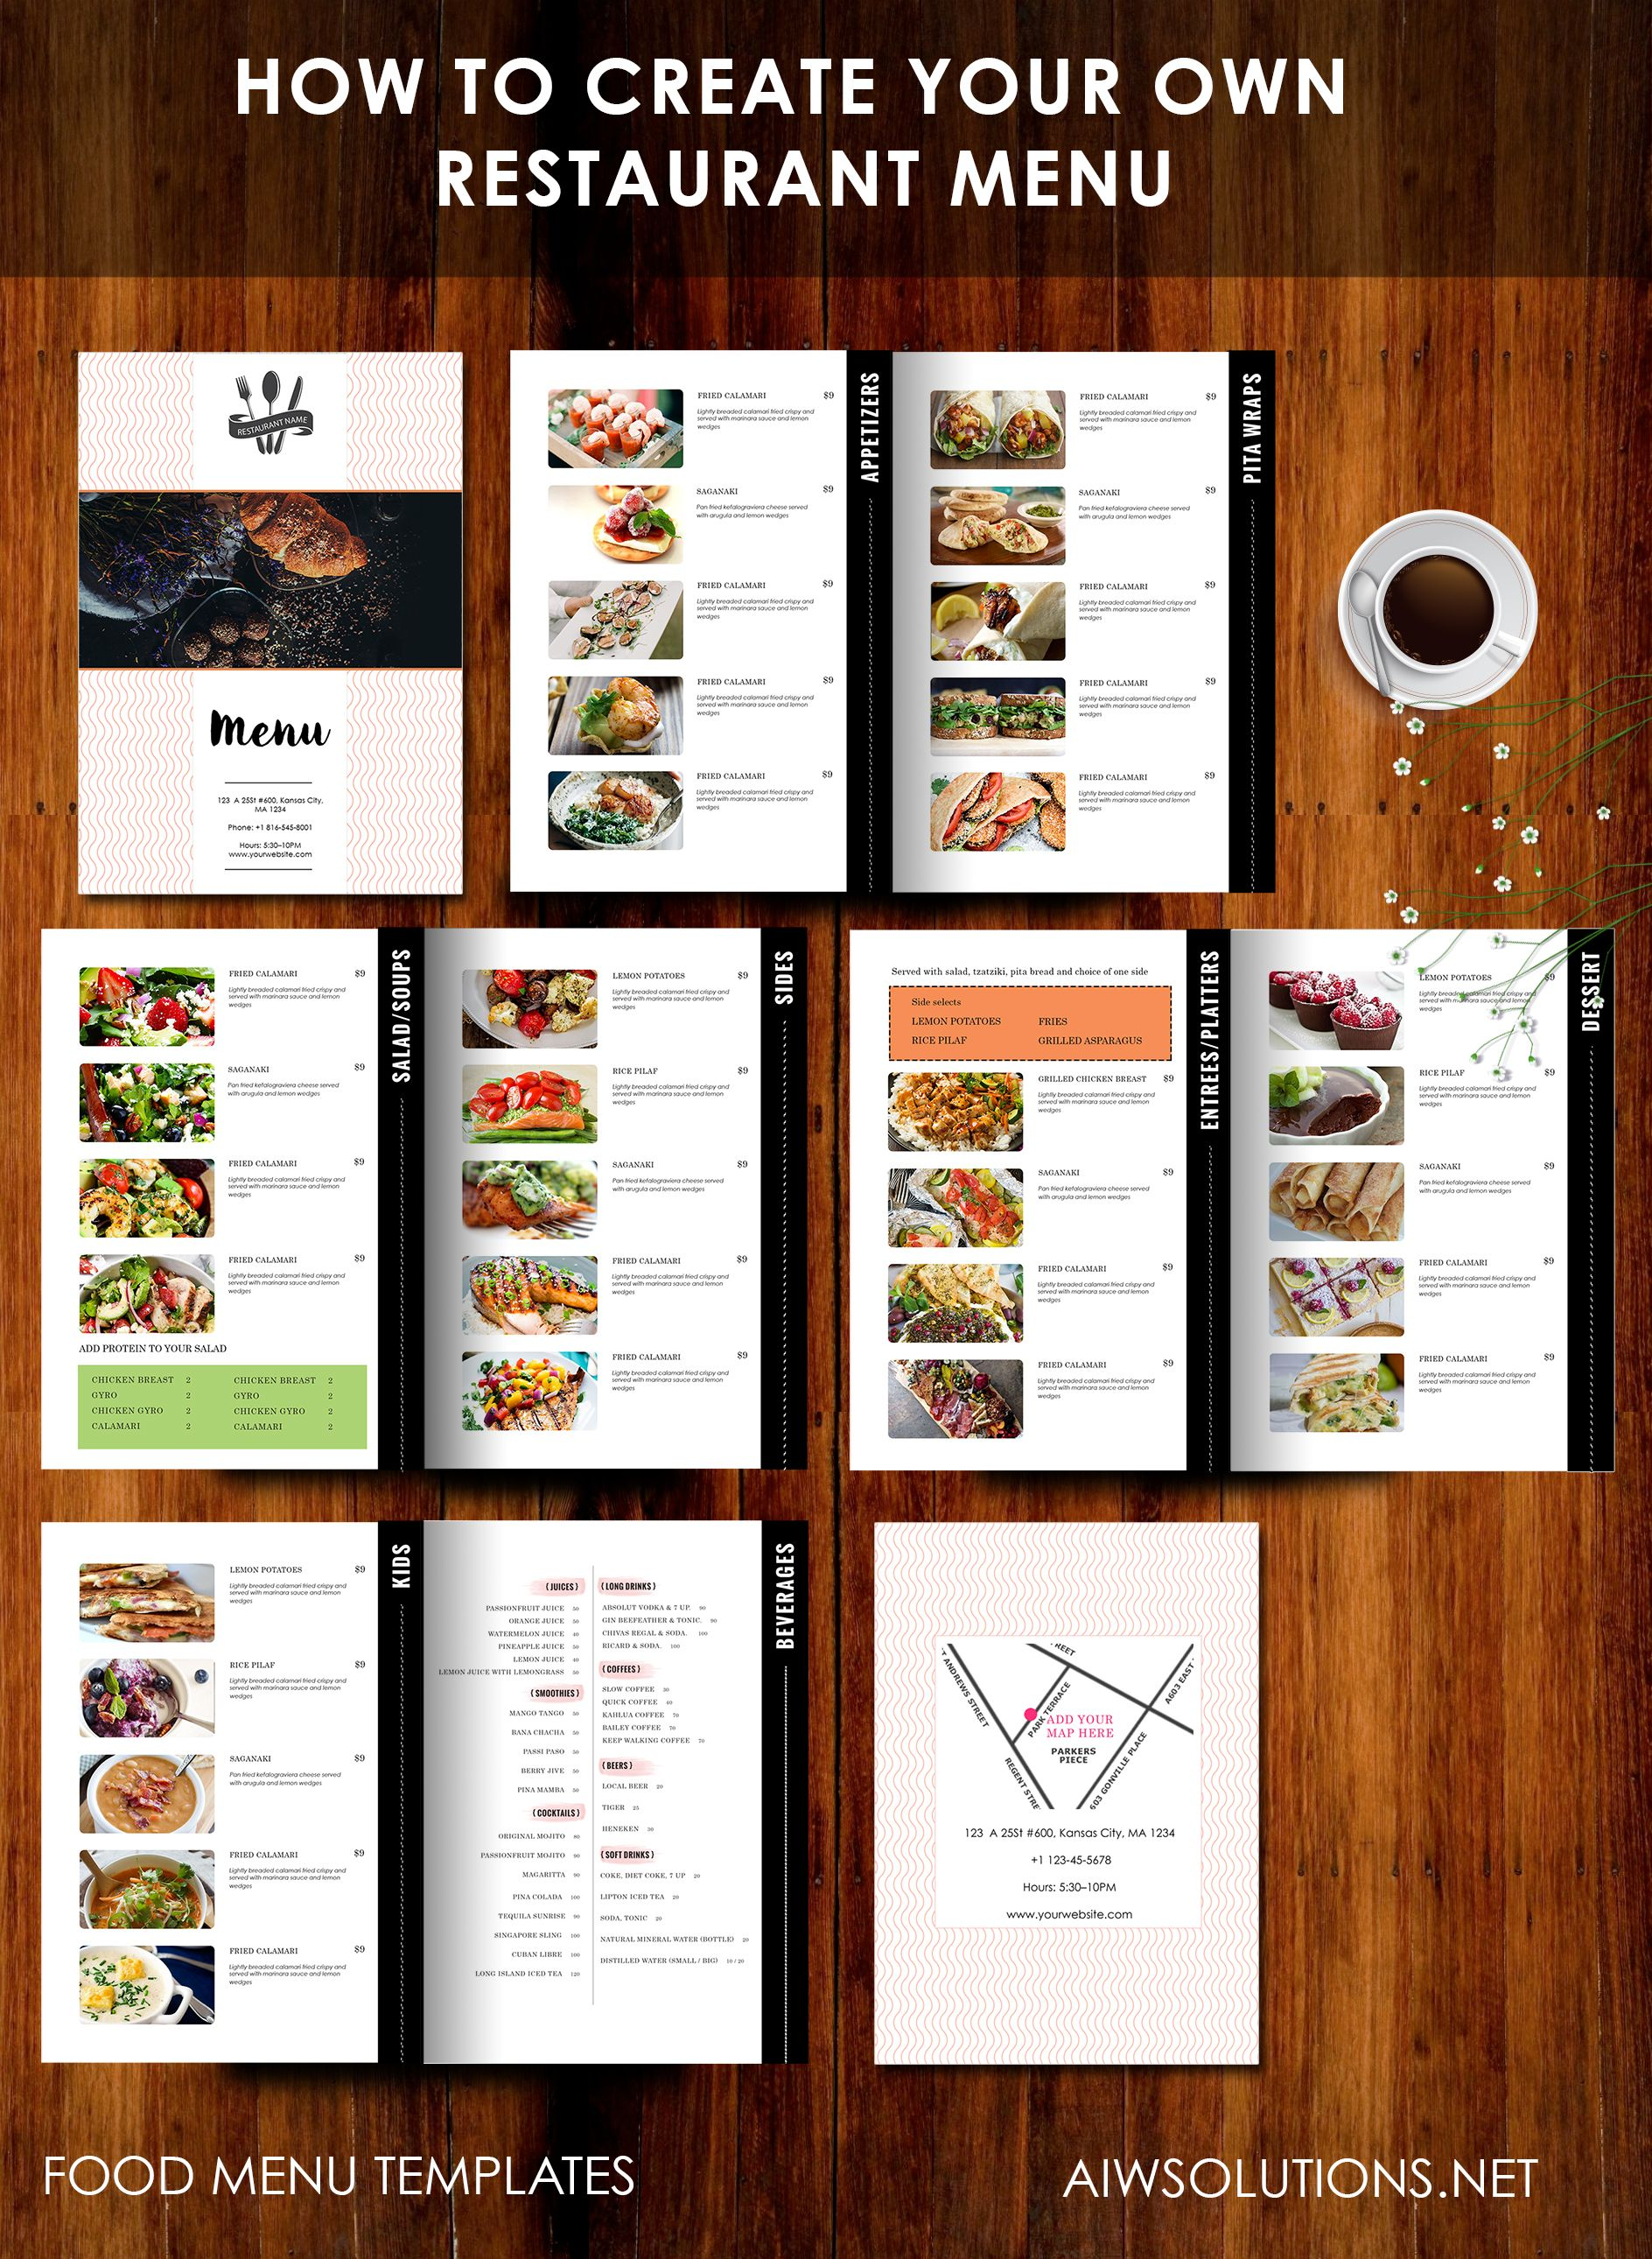 how to create your own restaurant menu drink menu bar menu food